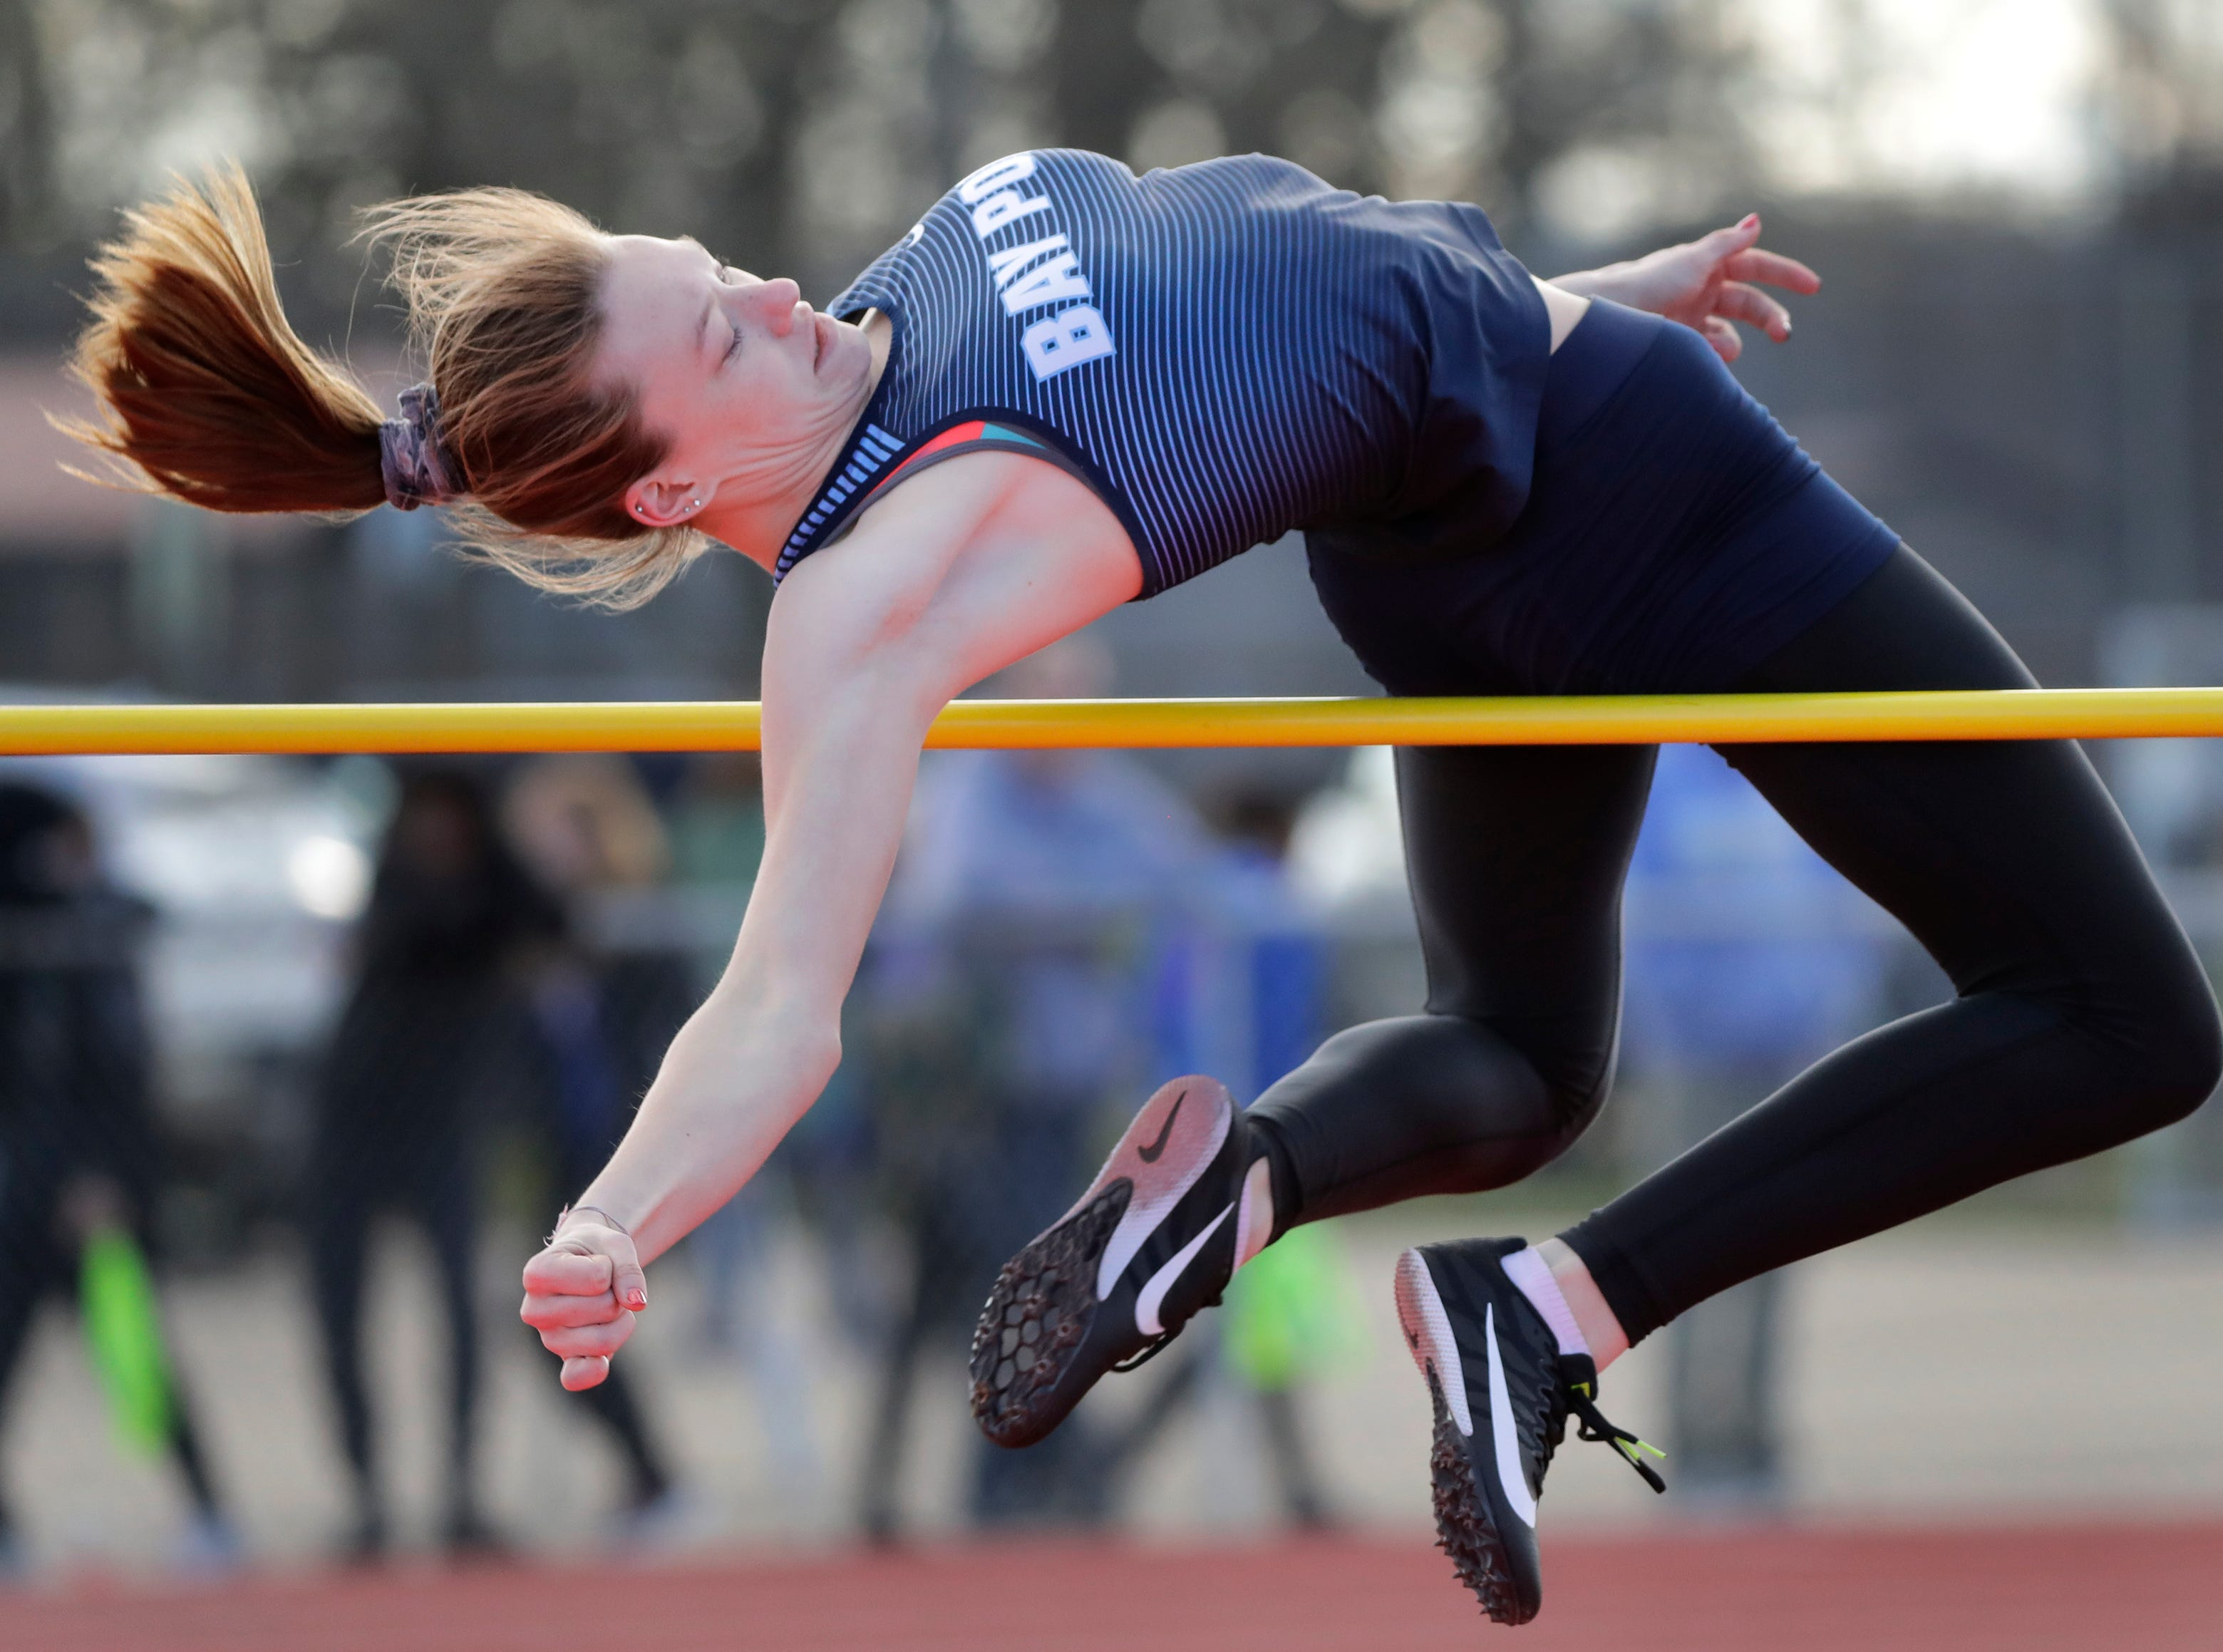 Bay Port High School's Sydney Palomaki competes in the high jump event during the Neenah co-ed invitational track and field meet Friday, April 26, 2019, at Neenah High School in Neenah, Wis. 